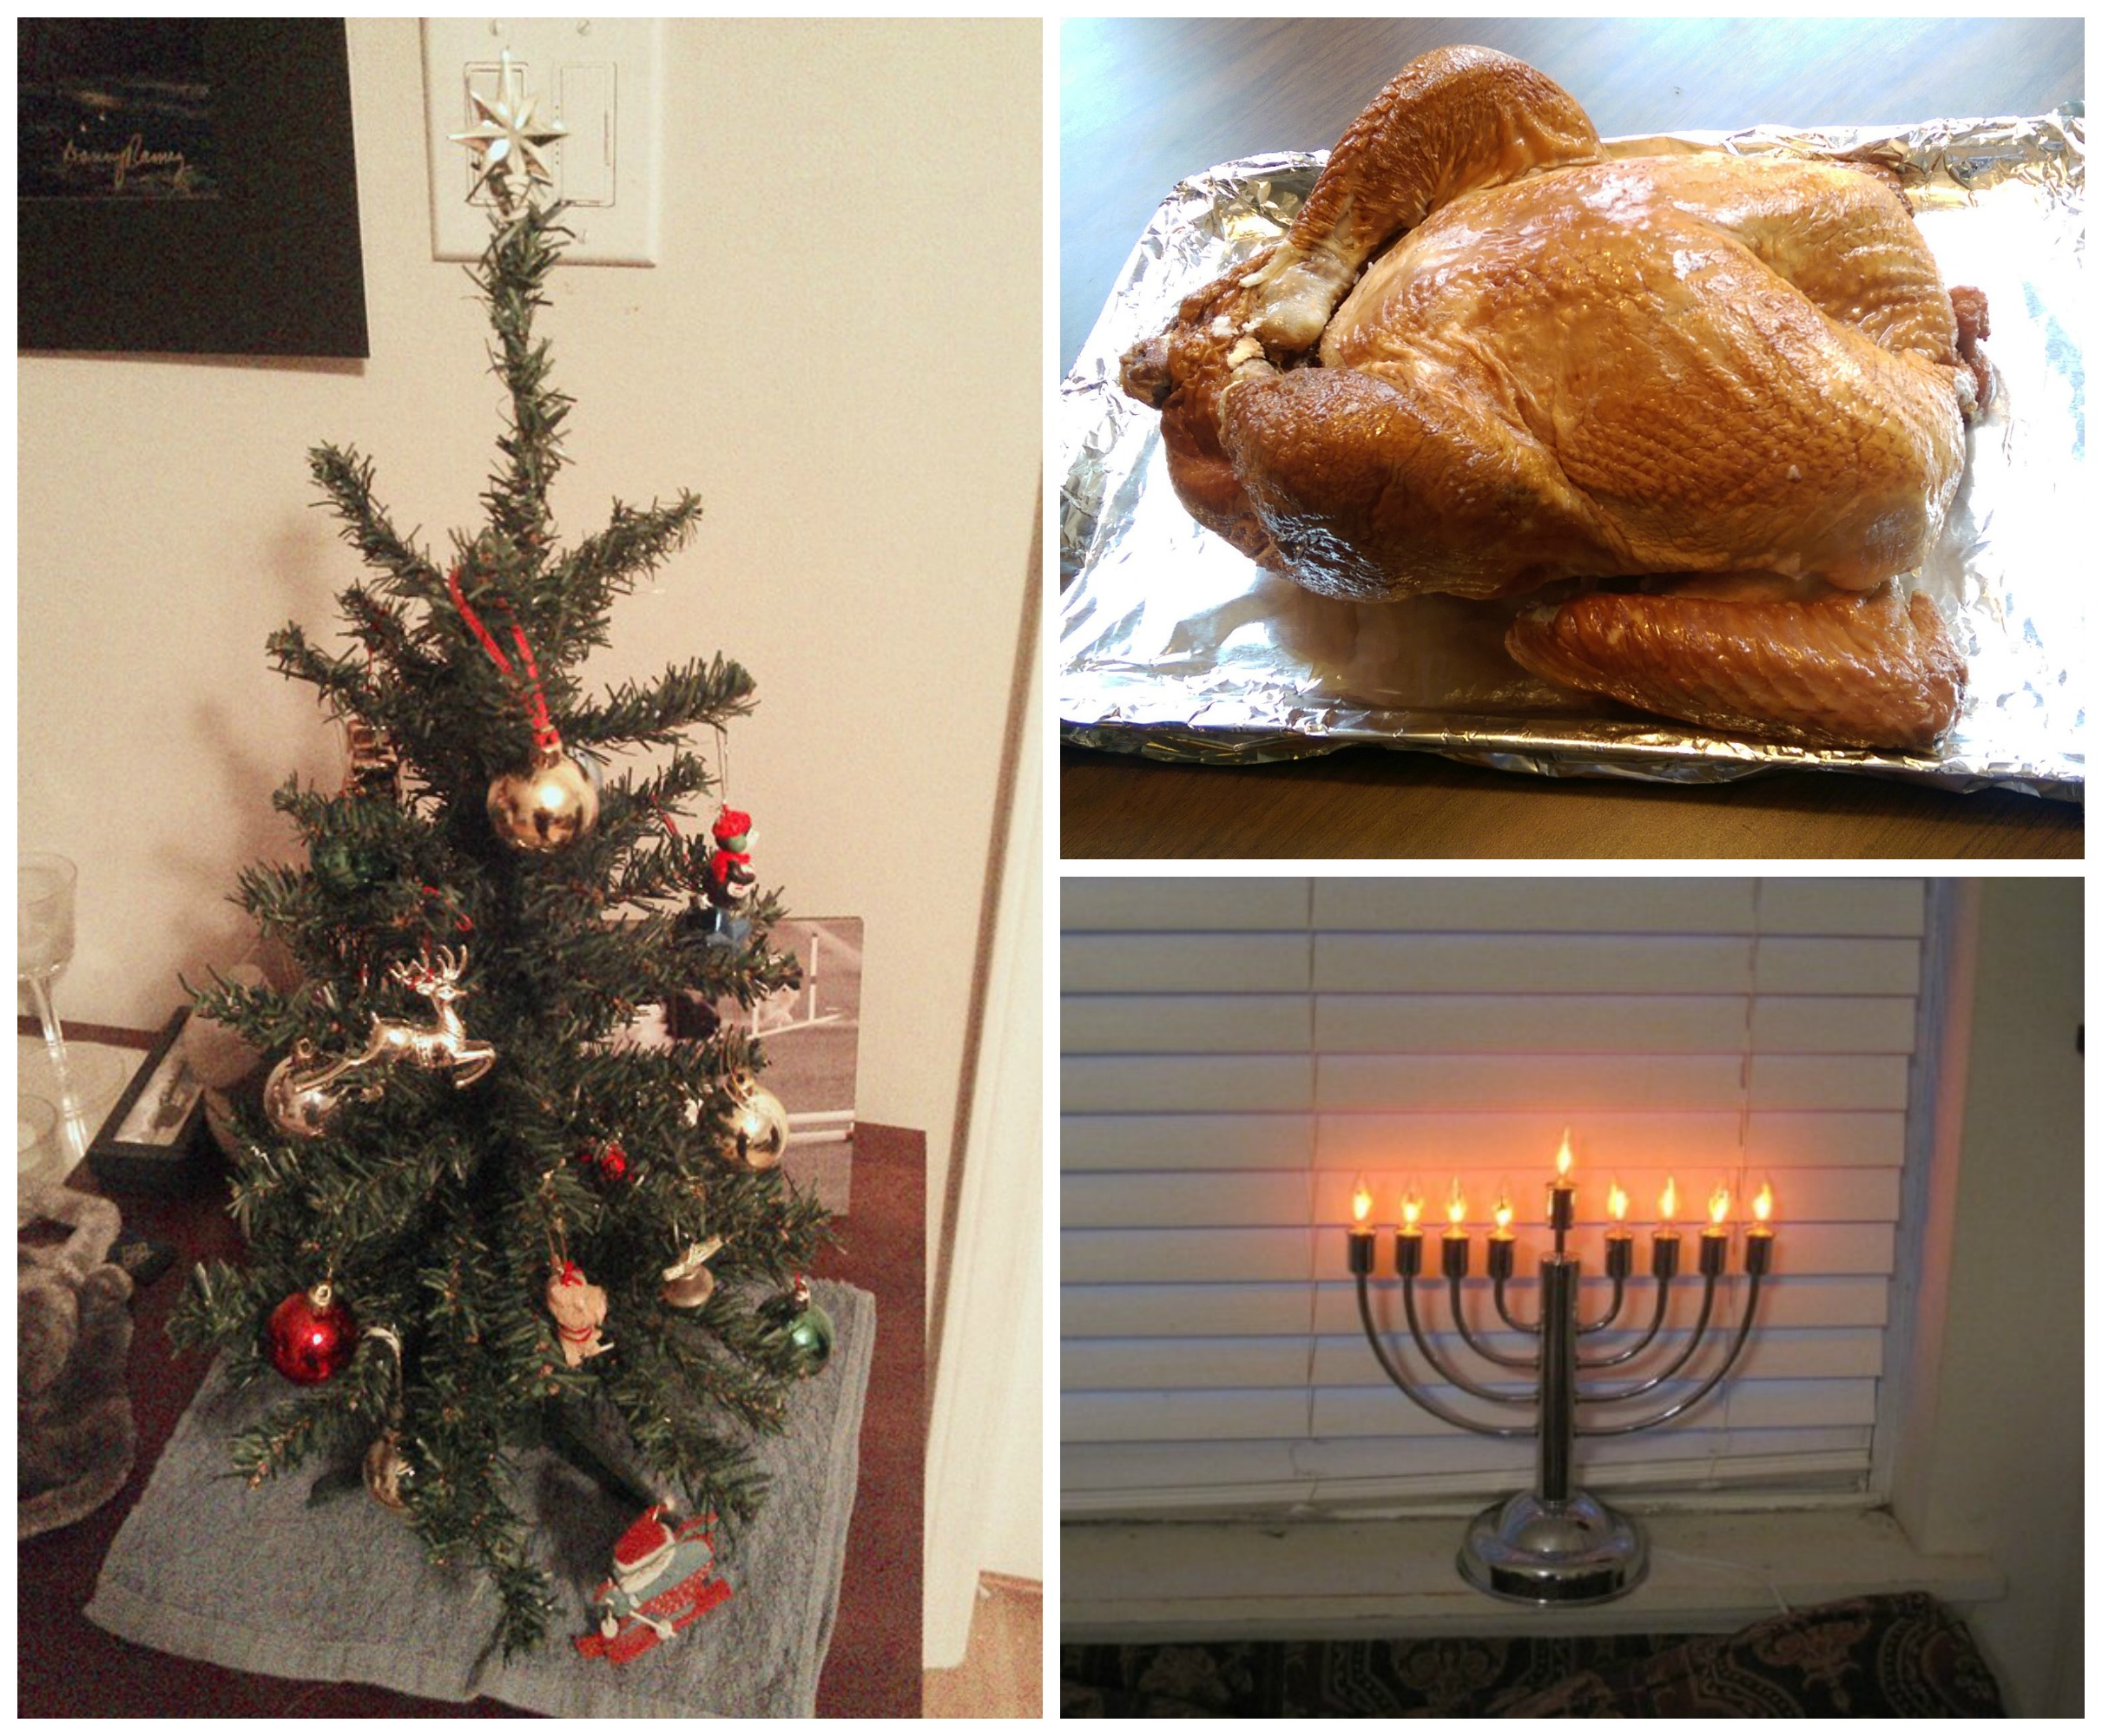 a christmas tree, turkey, and chanukah menorah to respresent the year end holiday seasons